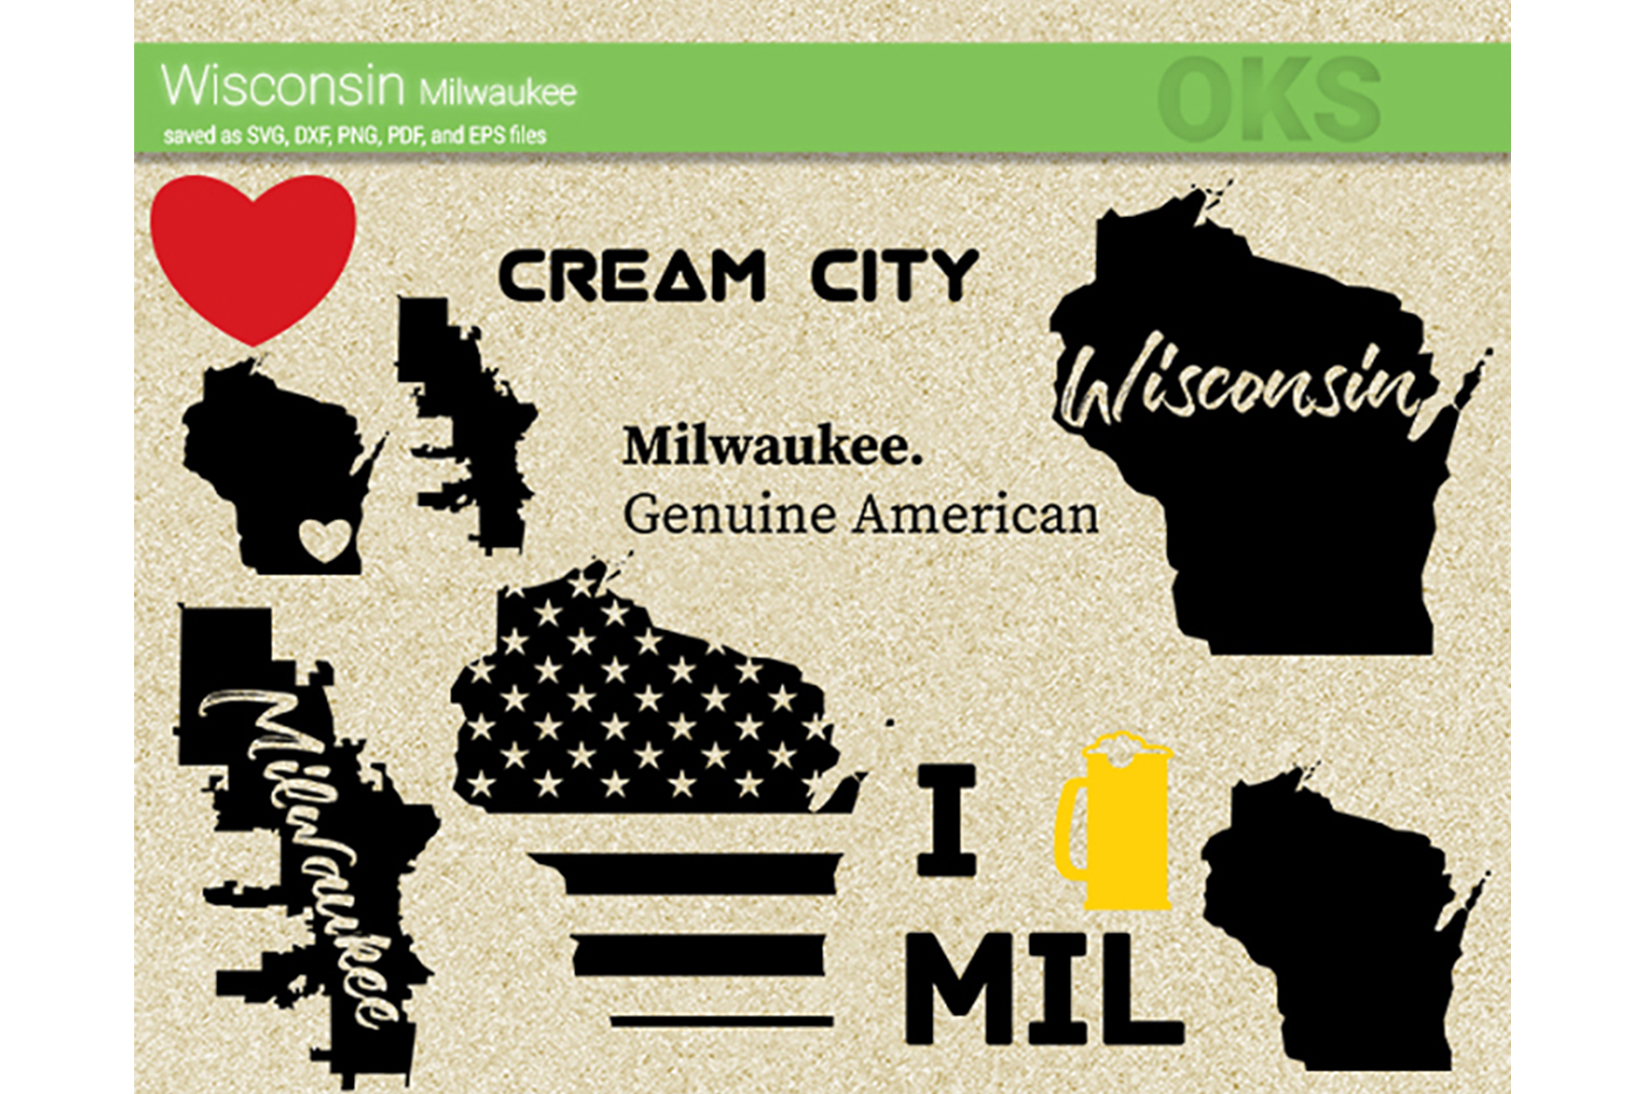 Download Free Wisconsin Milwaukee Vector Graphic By Crafteroks Creative Fabrica for Cricut Explore, Silhouette and other cutting machines.